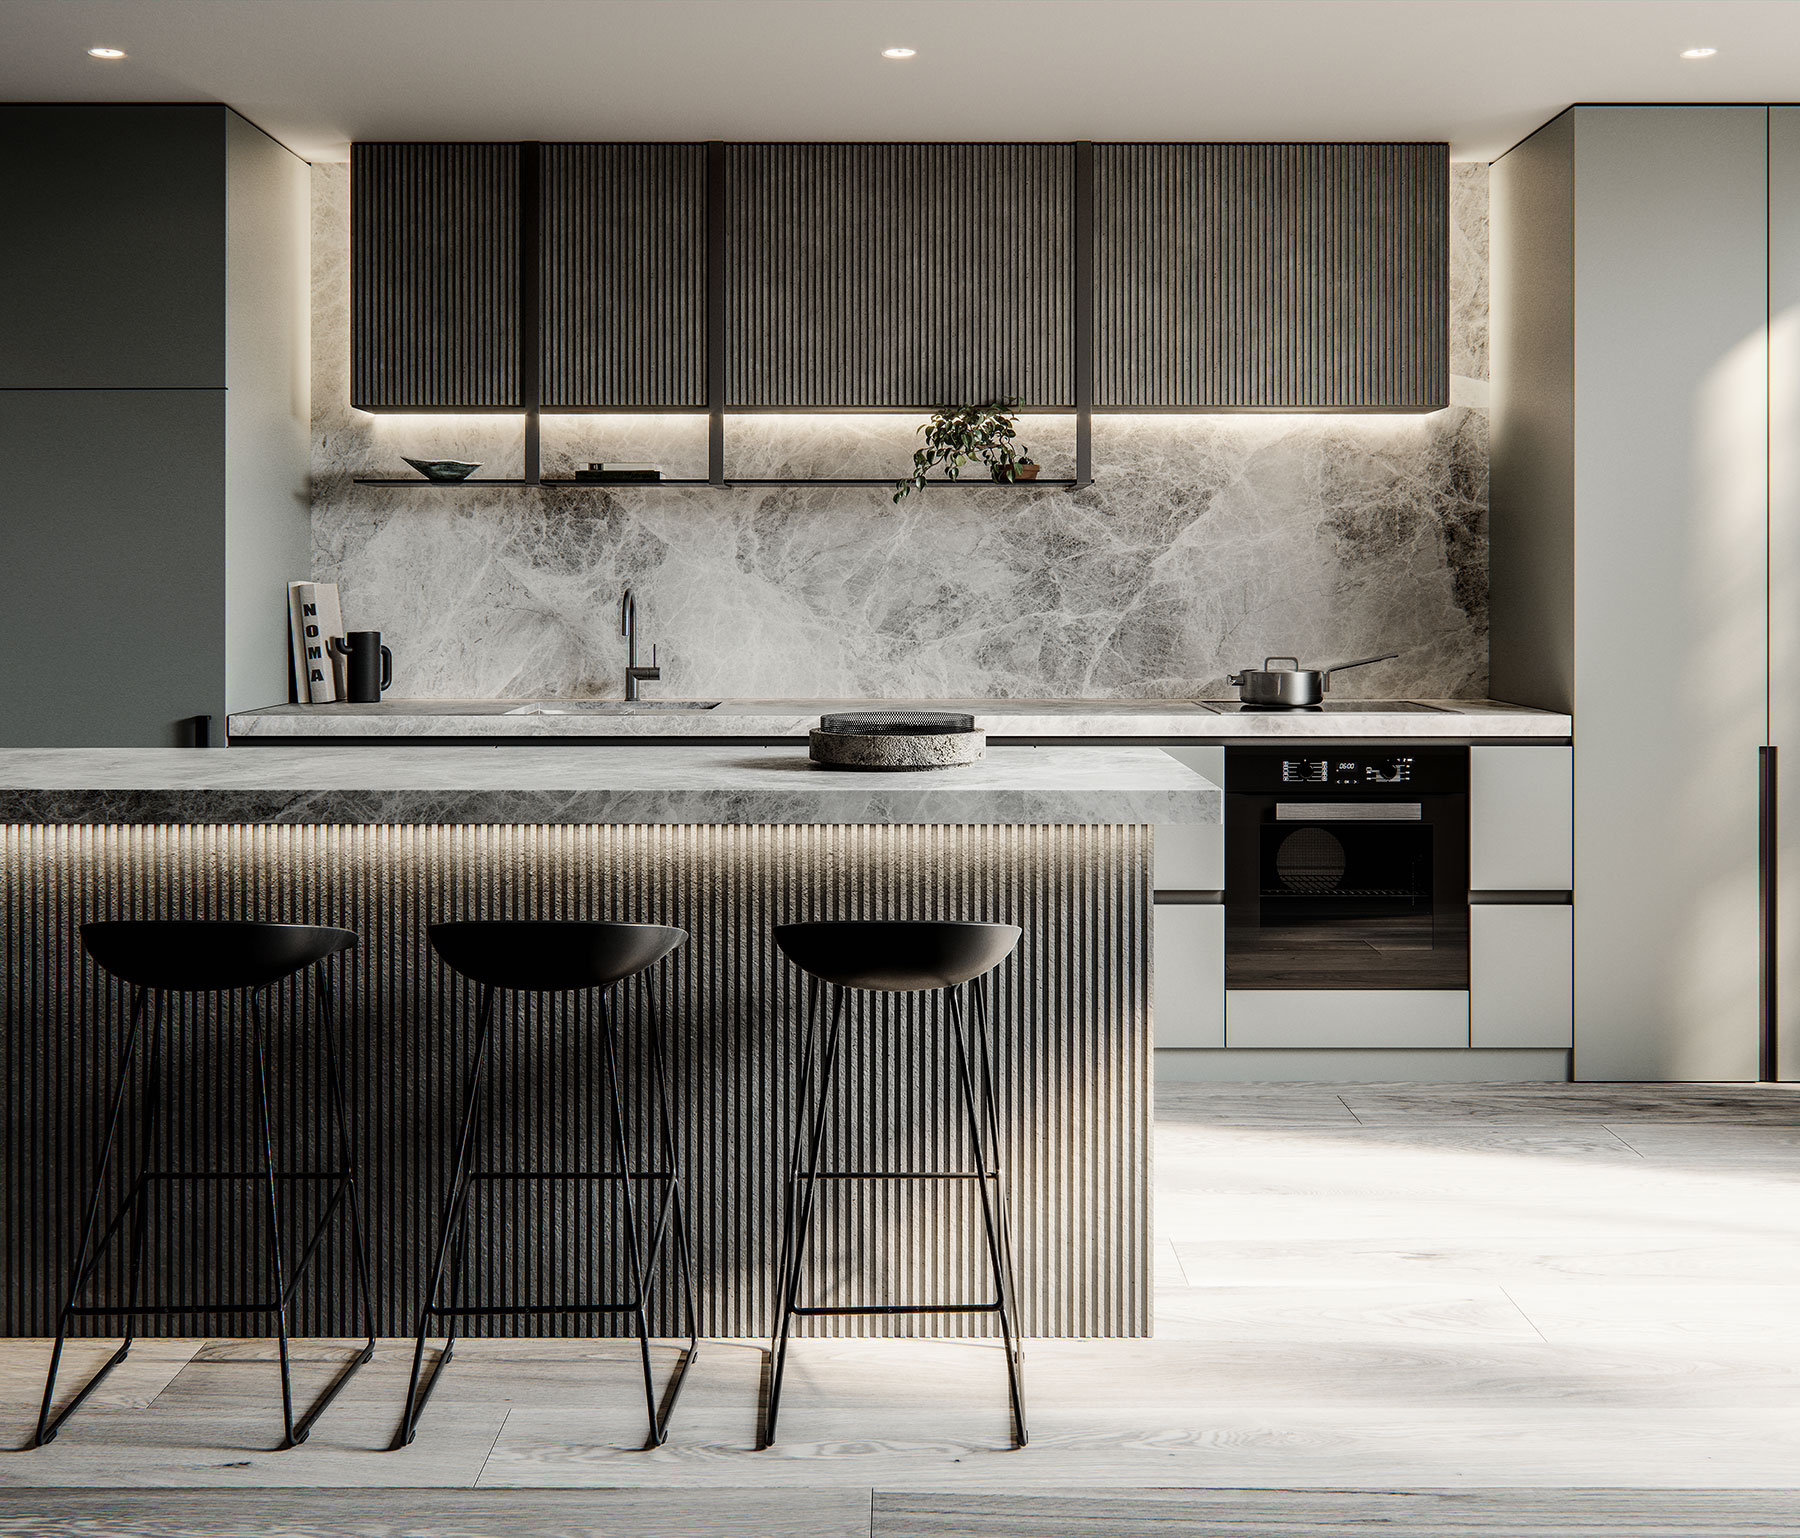 grey interior design scheme with lighting for multi-residential development by c.kairouz architects